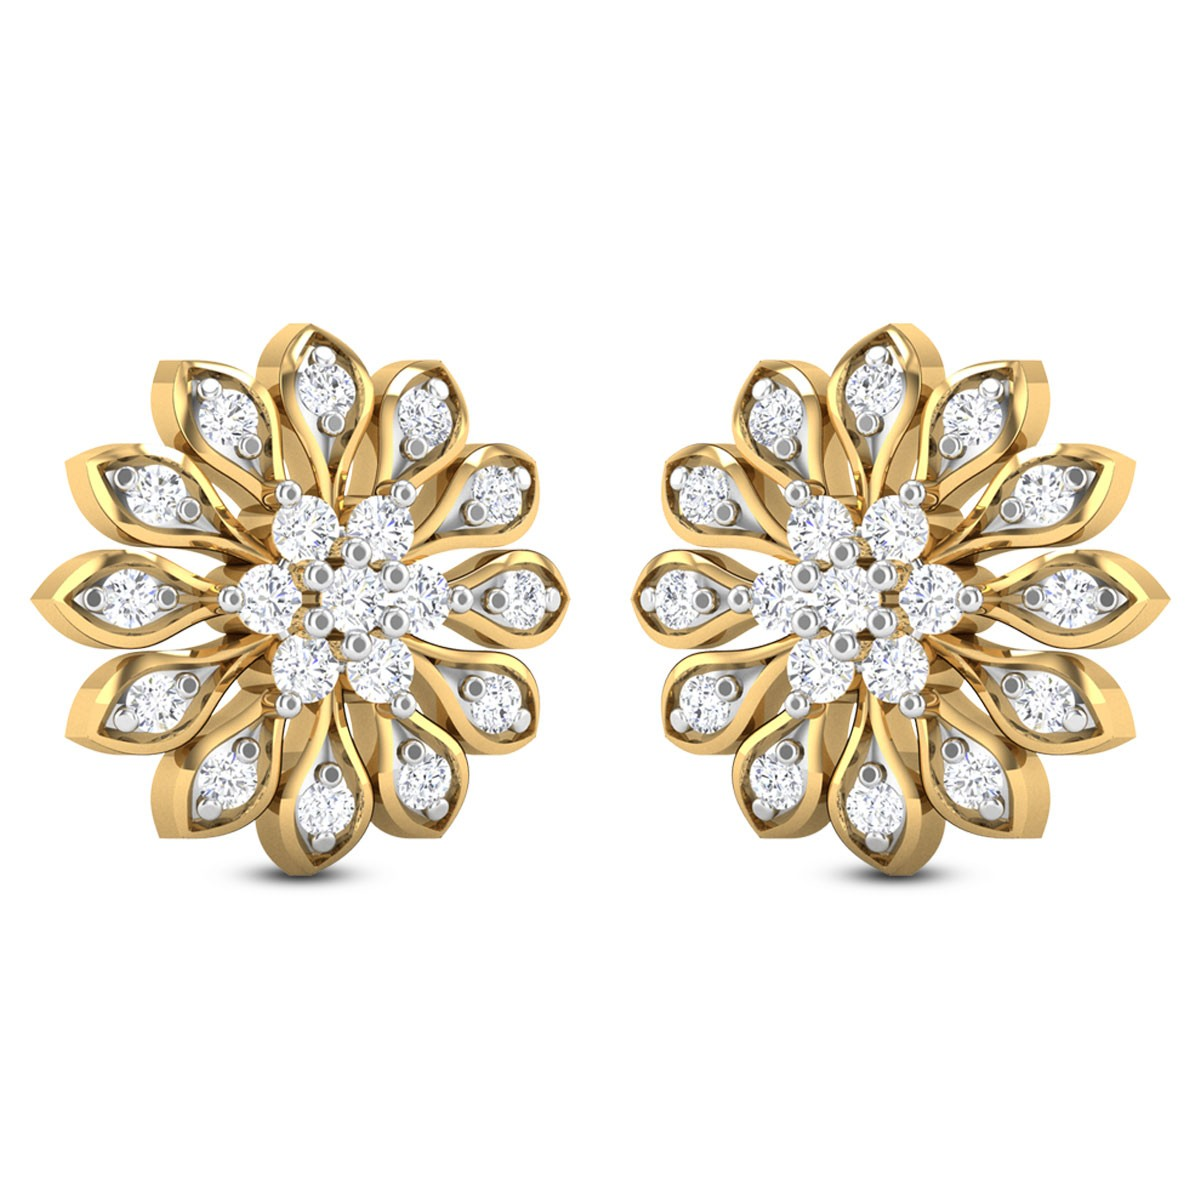 Devin Floral Diamond Stud Earrings